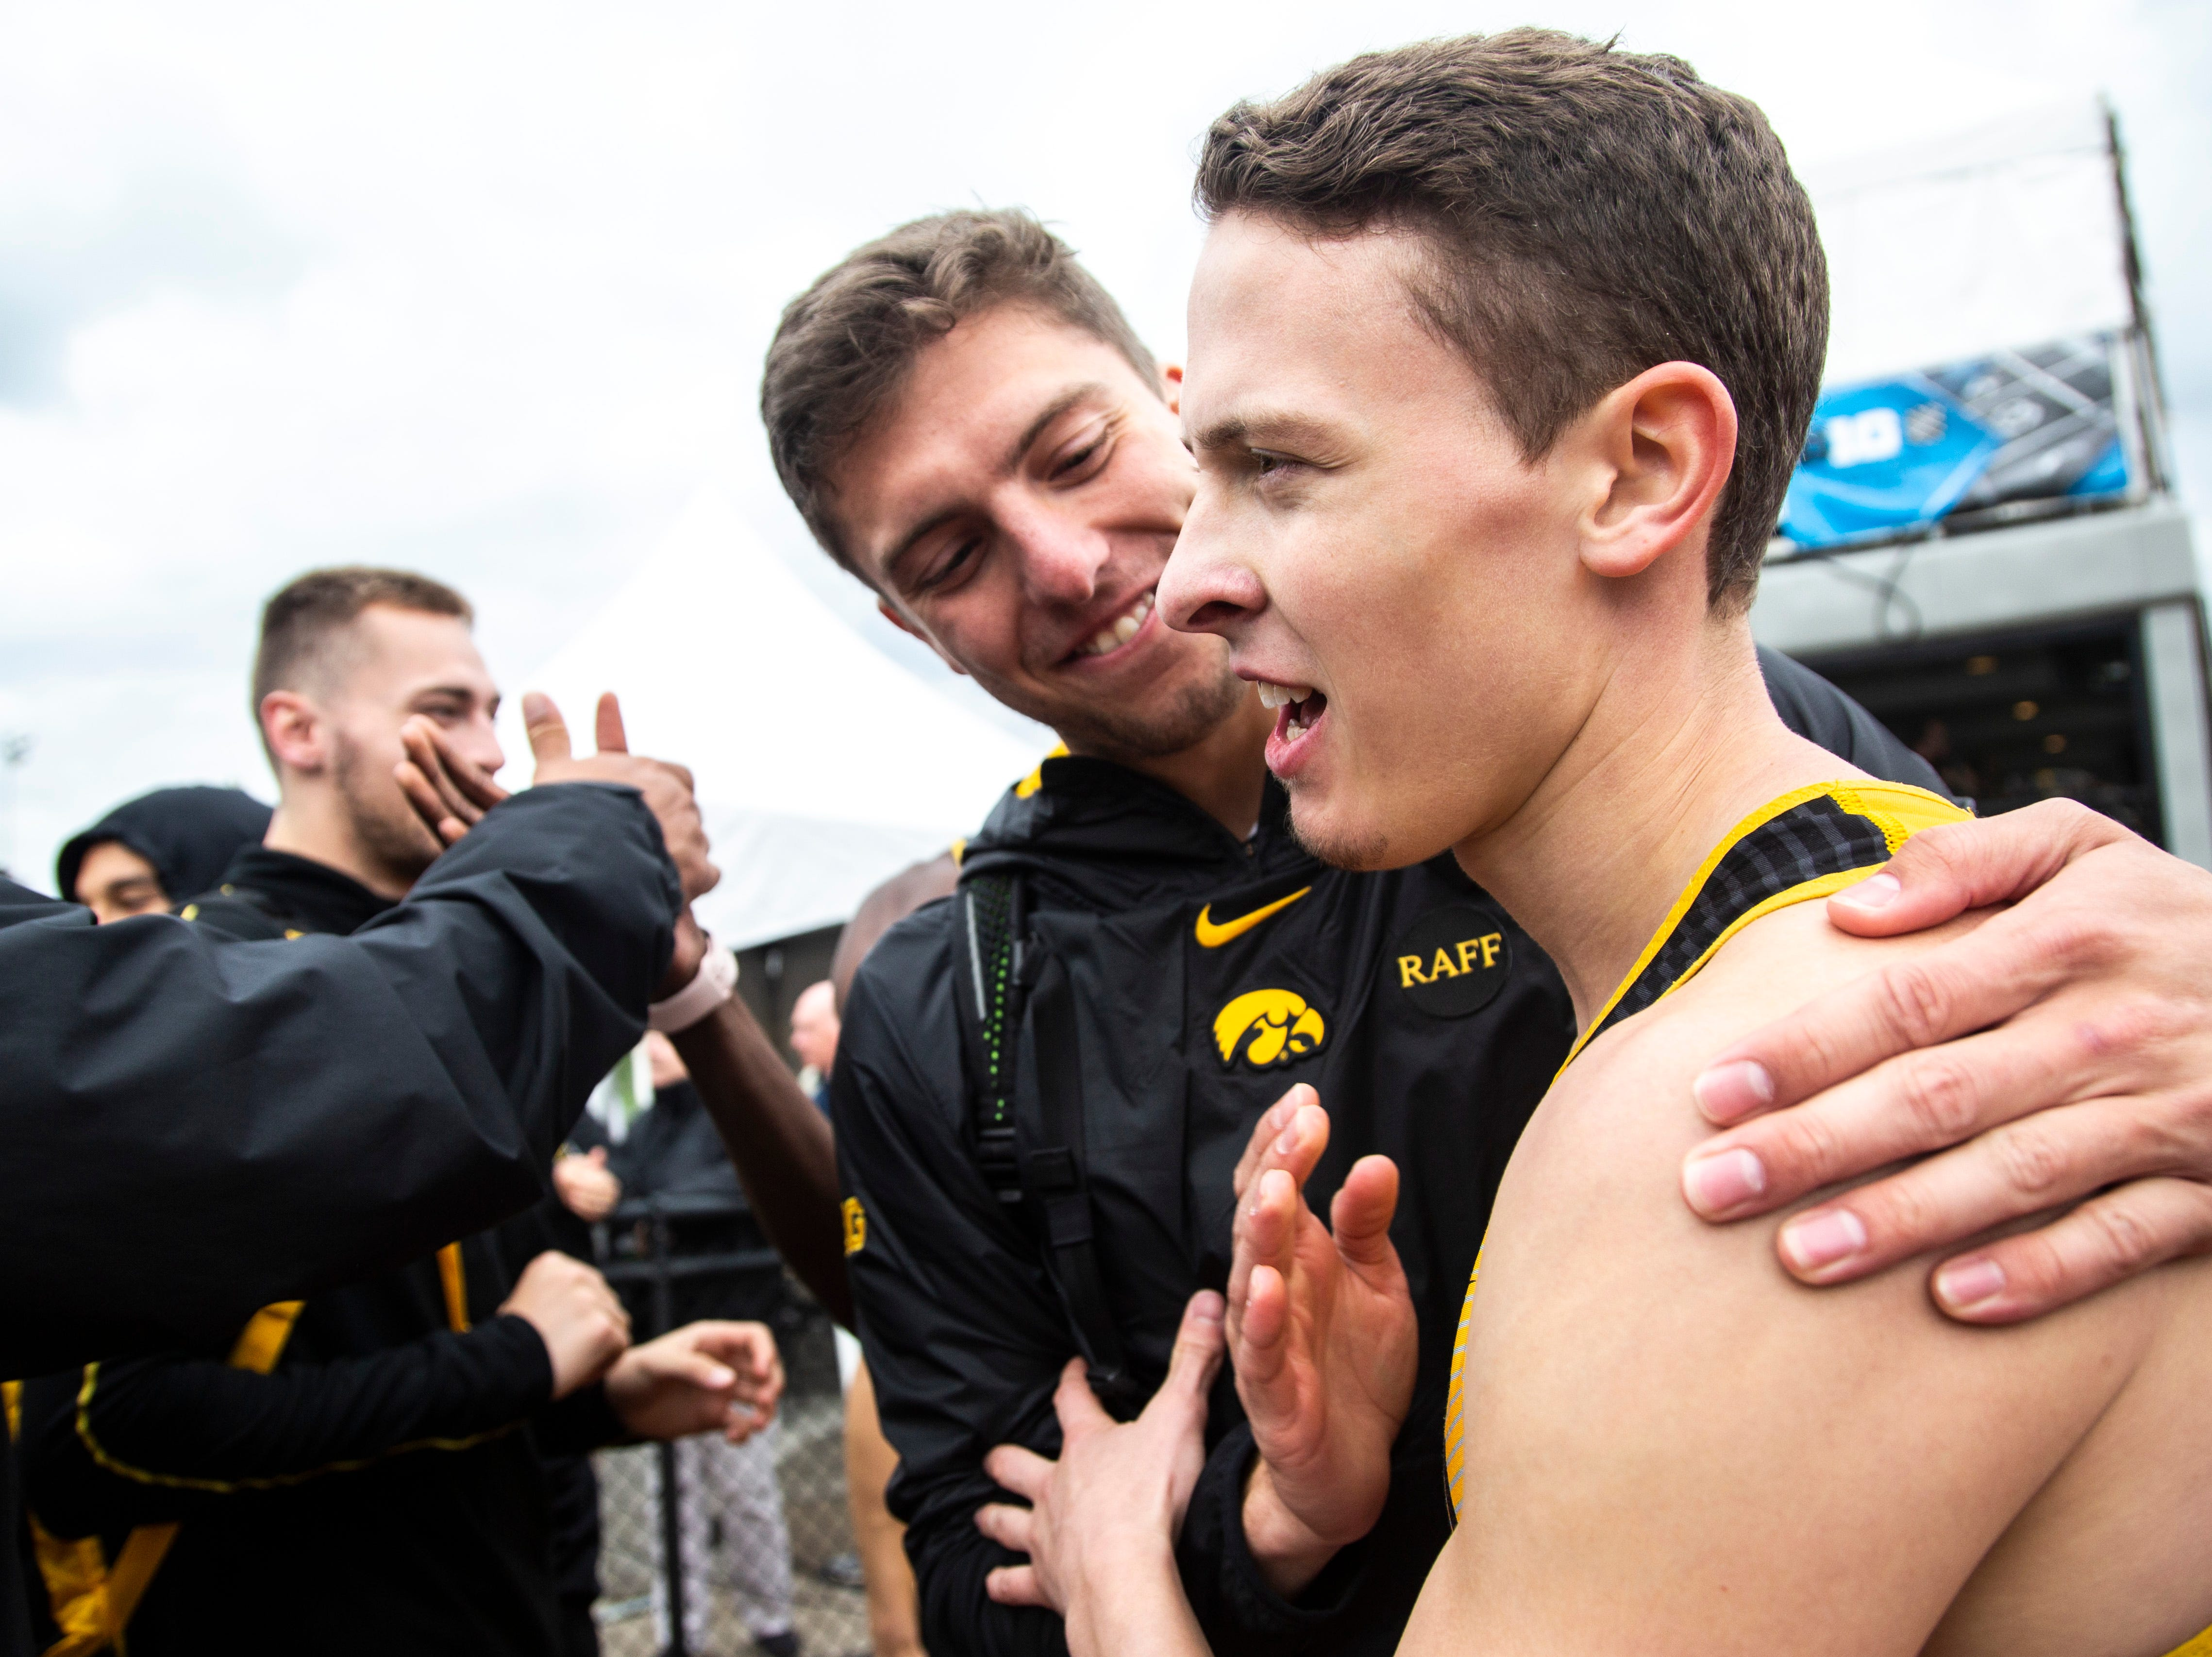 Iowa's Chris Thompson gets embraced by teammates during the final day of Big Ten track and field outdoor championships, Sunday, May 12, 2019, at Francis X. Cretzmeyer Track on the University of Iowa campus in Iowa City, Iowa.